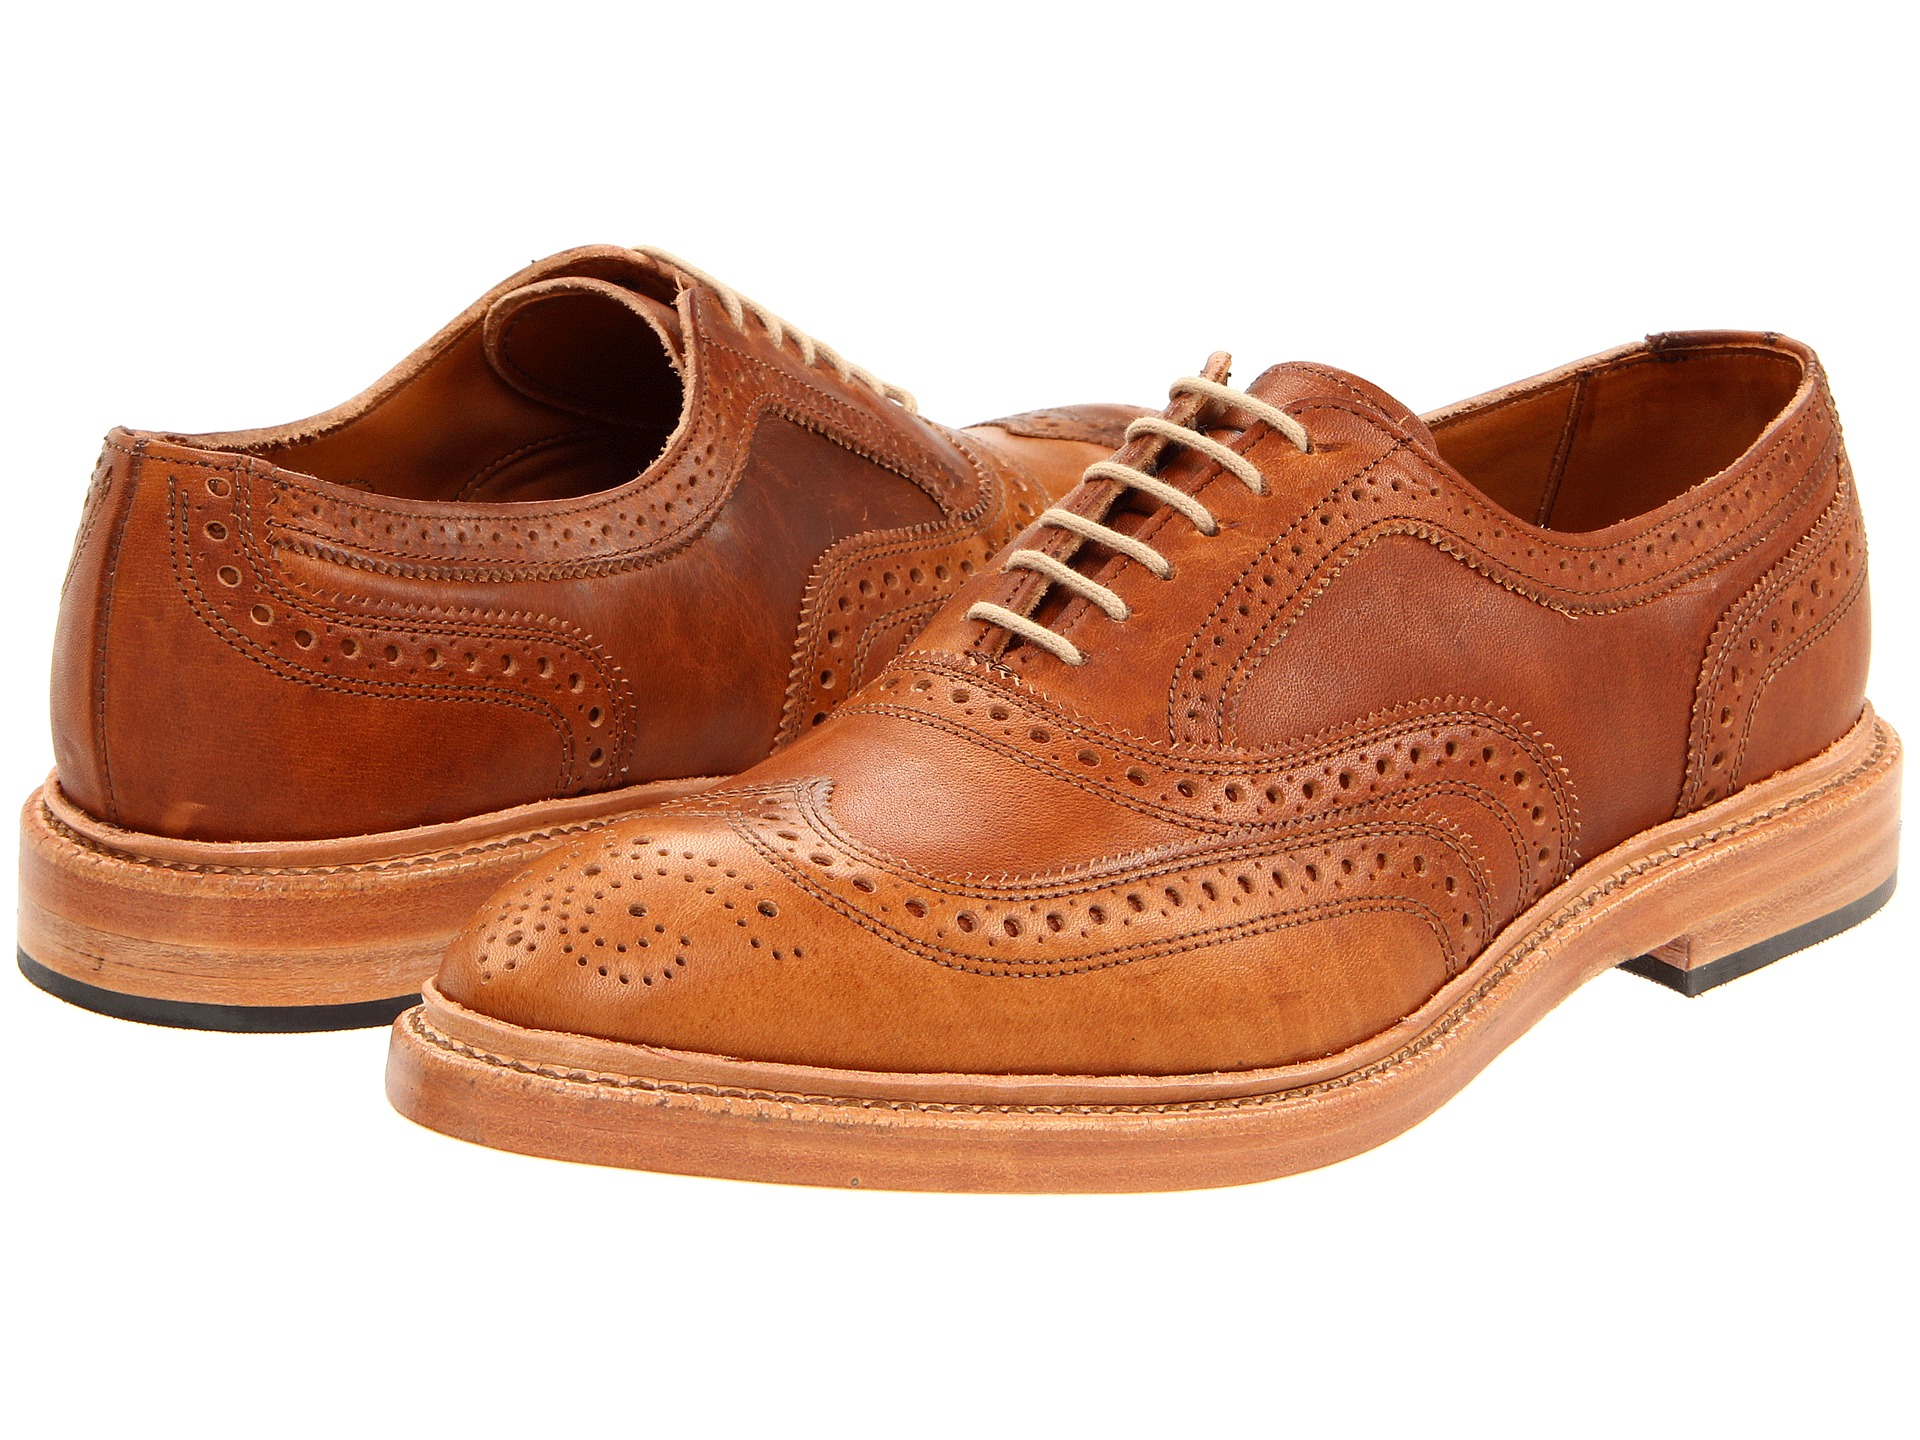 Allen Edmonds Mctavish From The 2011 Rough Collection